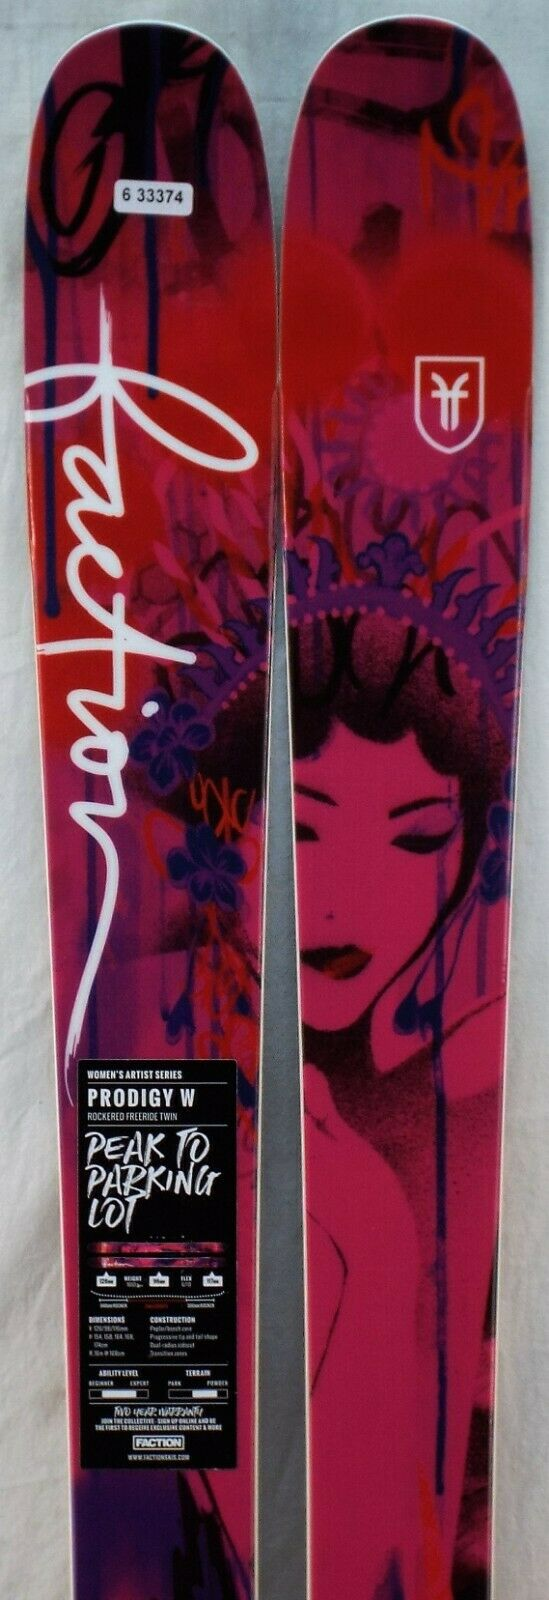 17-18 Faction Prodigy W New Women's Skis Size 158cm   official authorization